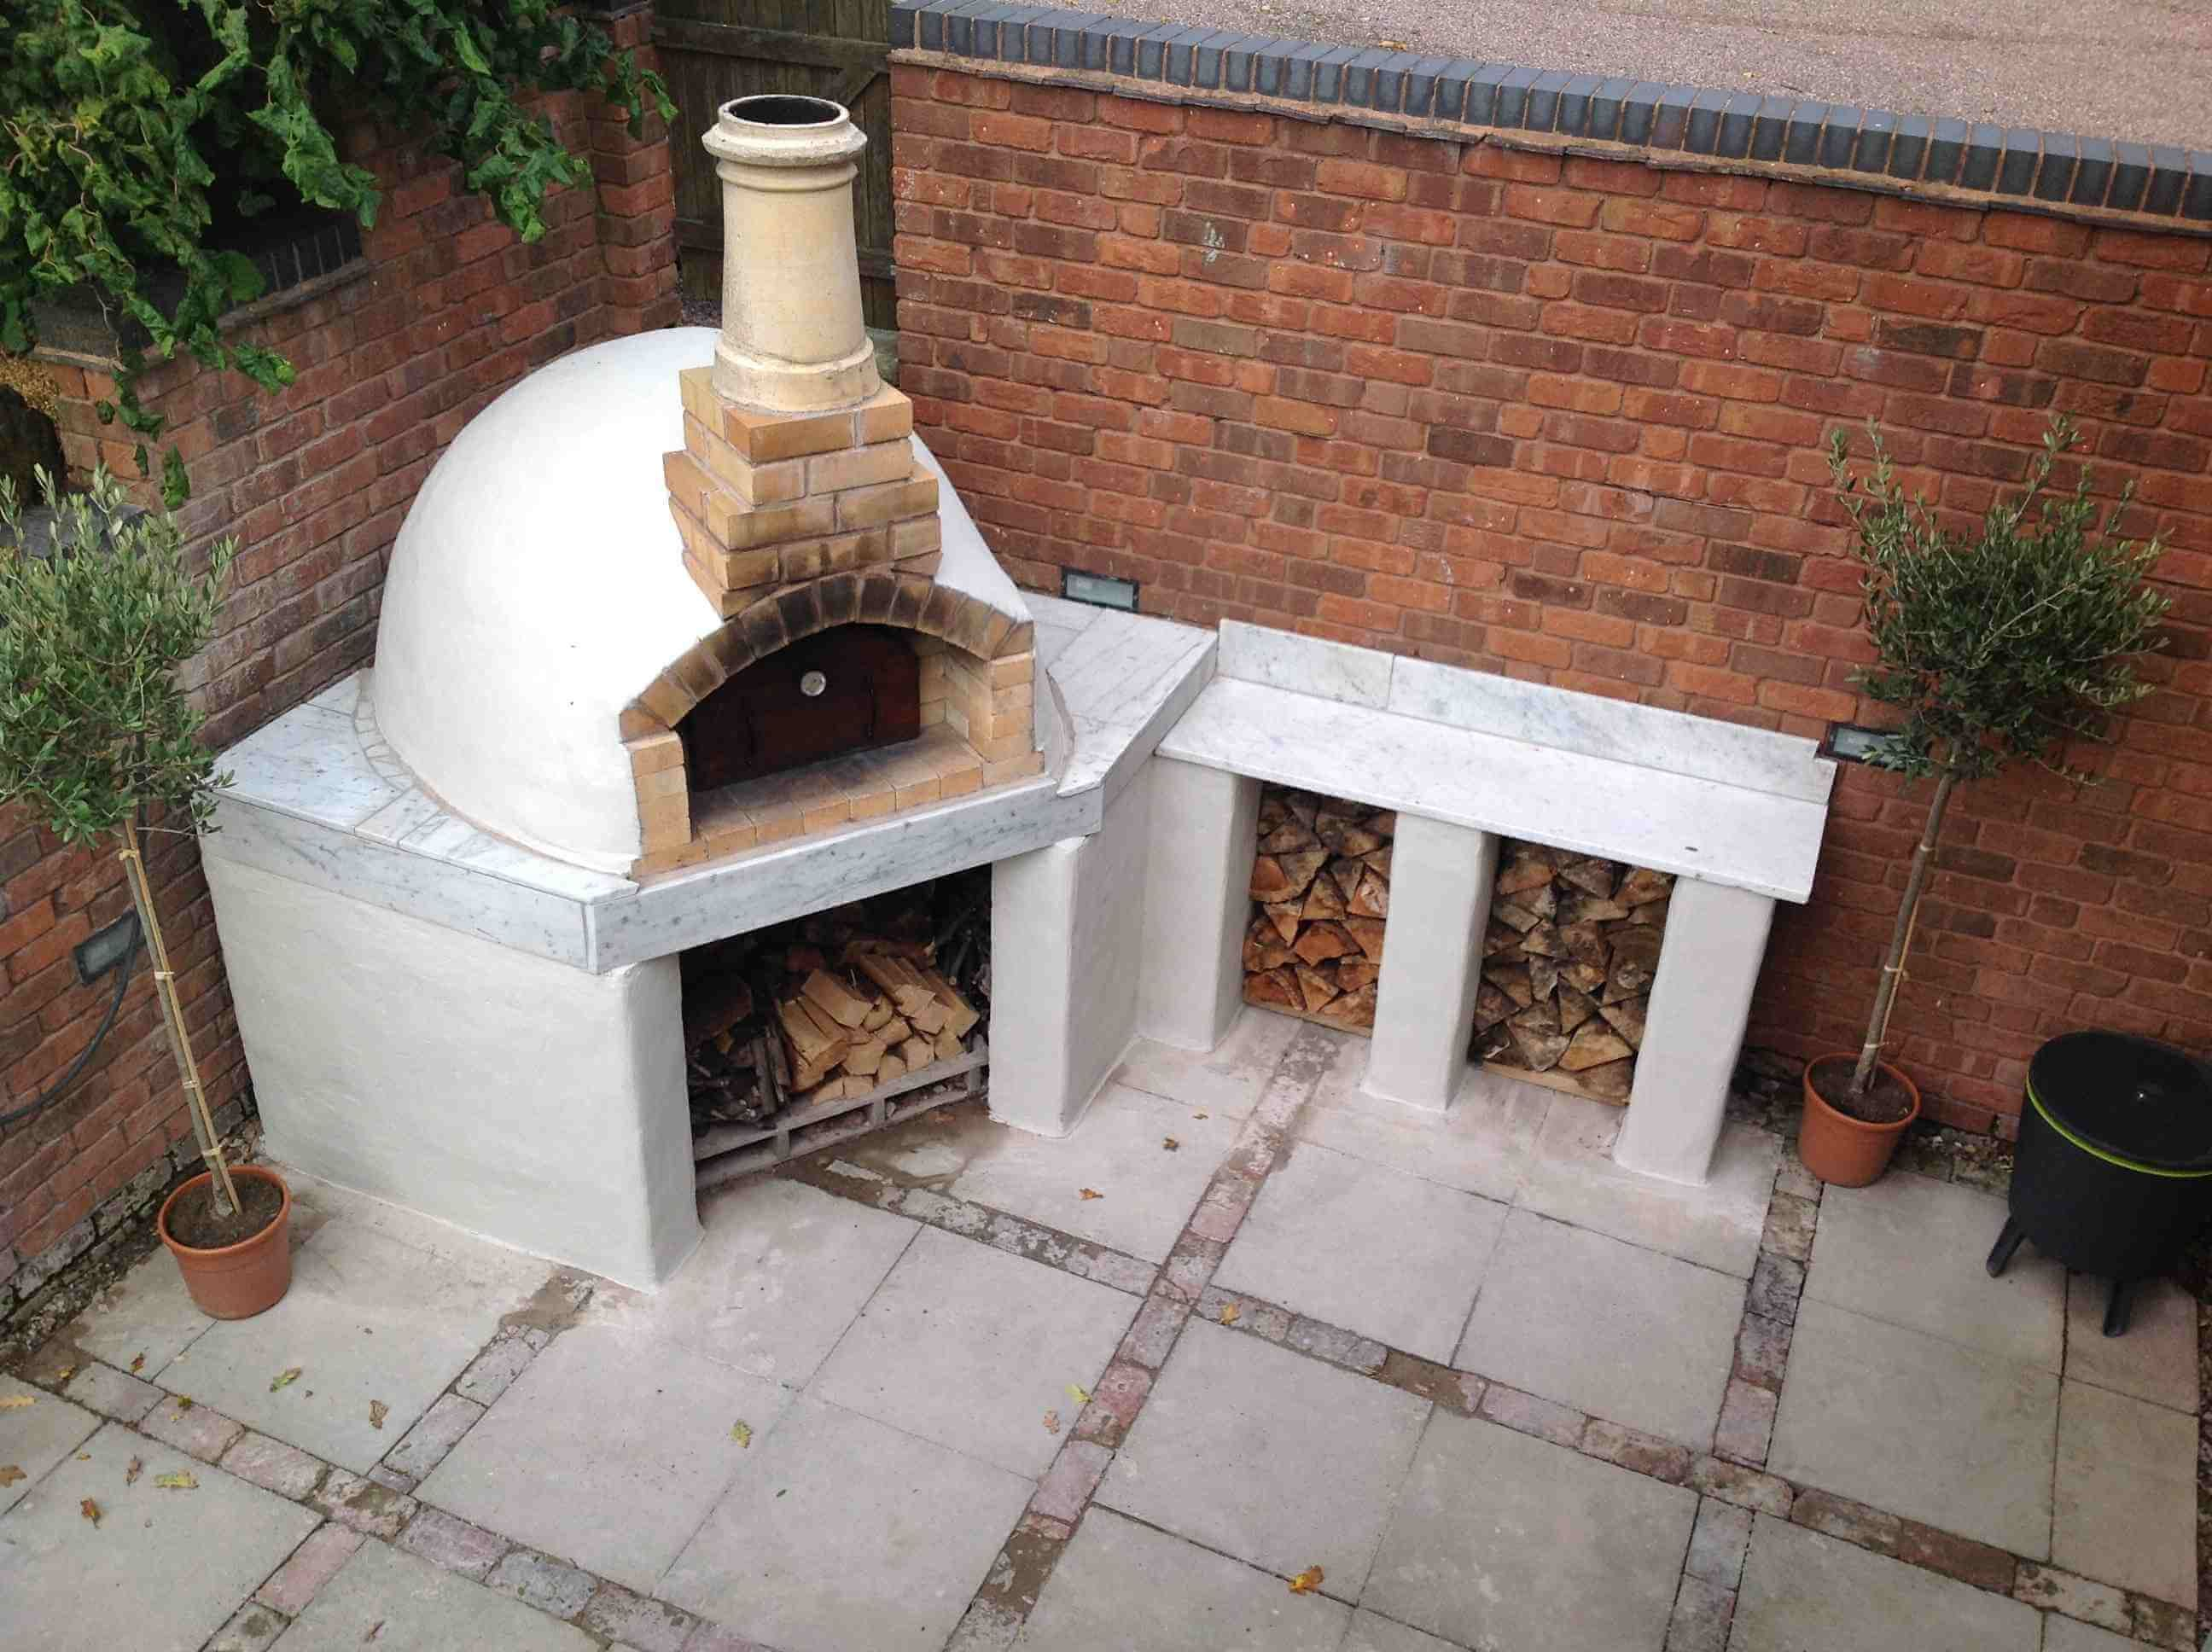 and fireplace patrofi oven outdoor patio kit veloclub pizza co